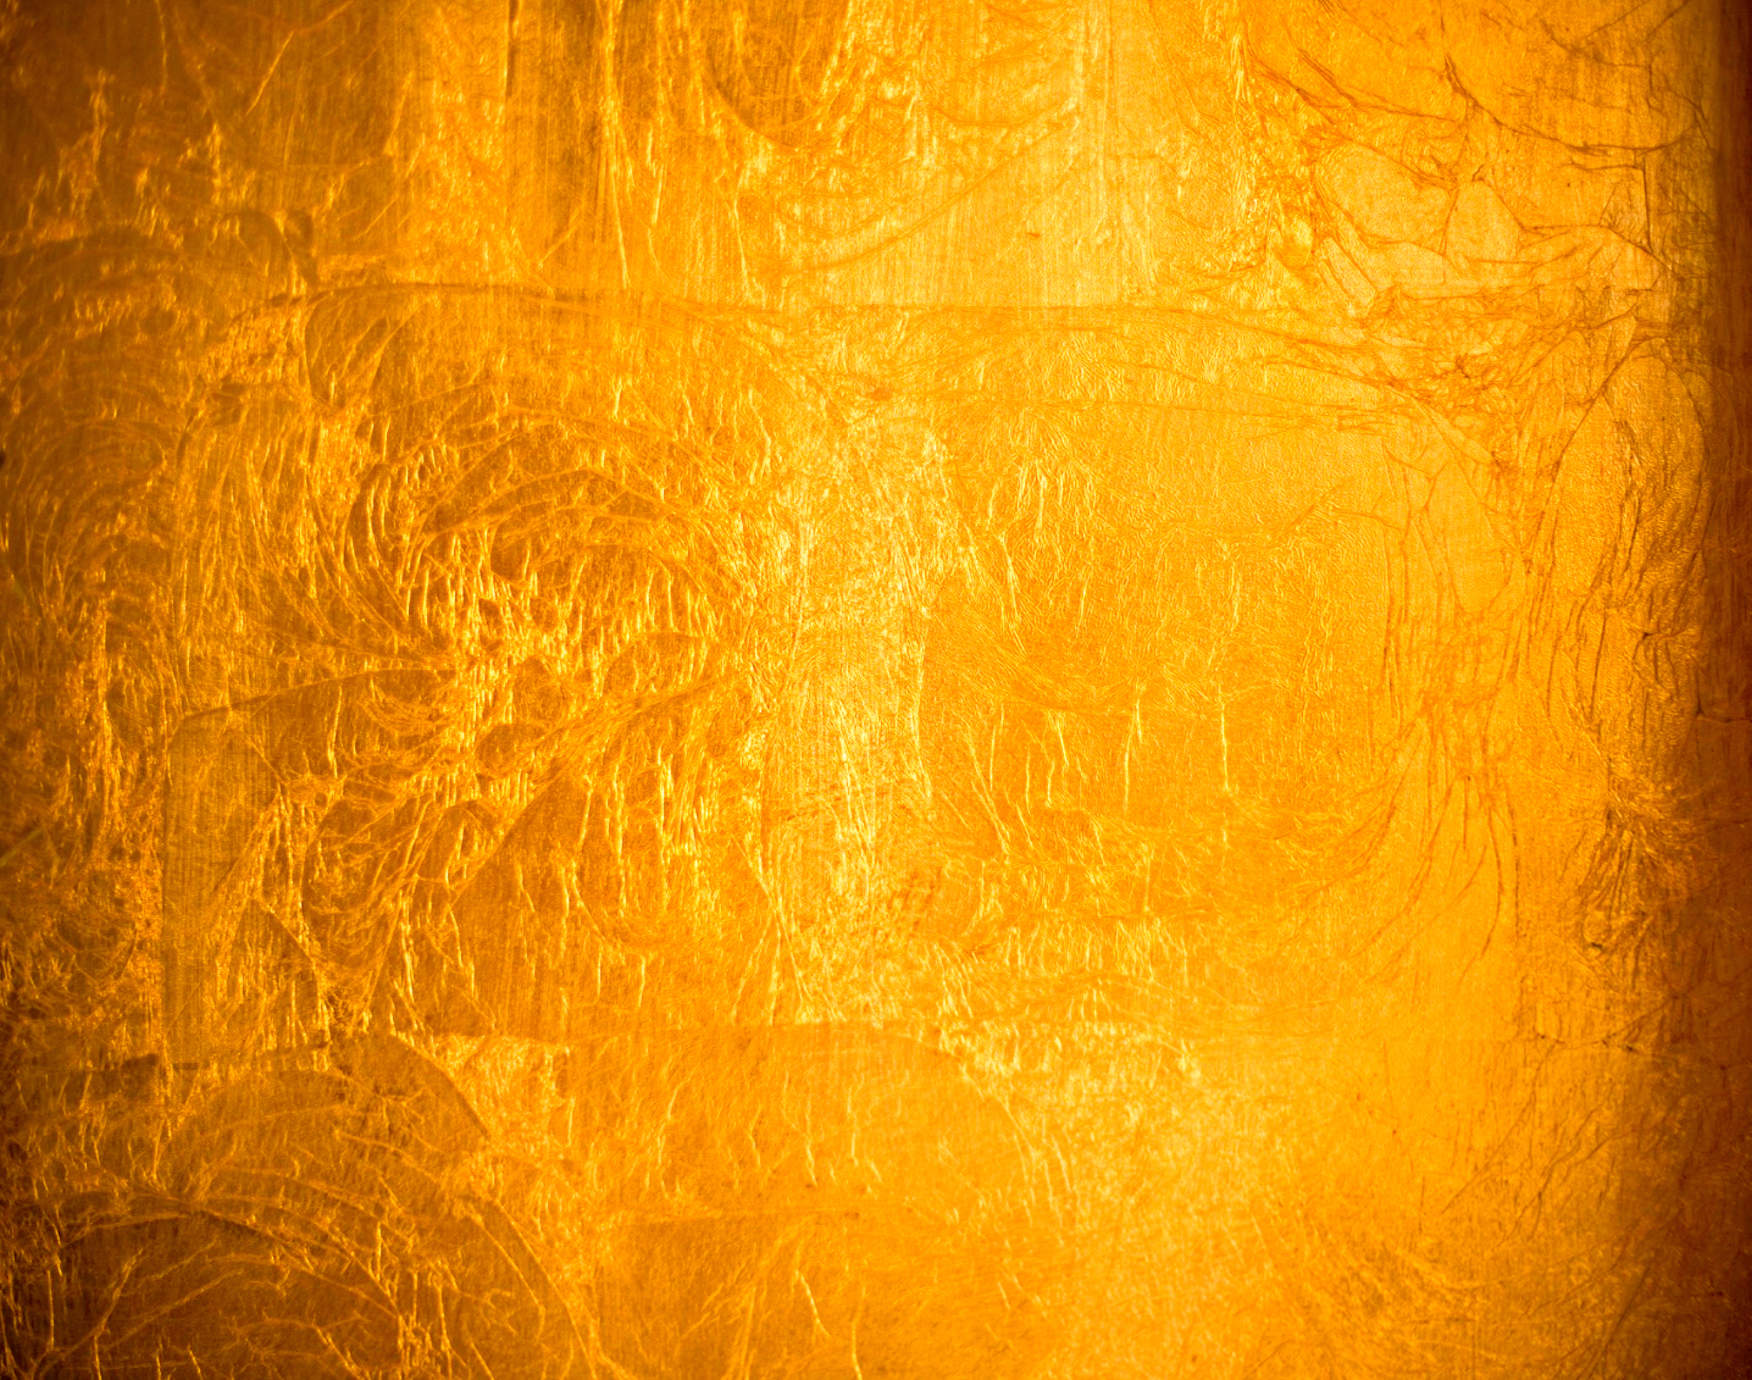 Shiny Gold Color Background Images Pictures   Becuo 1752x1380